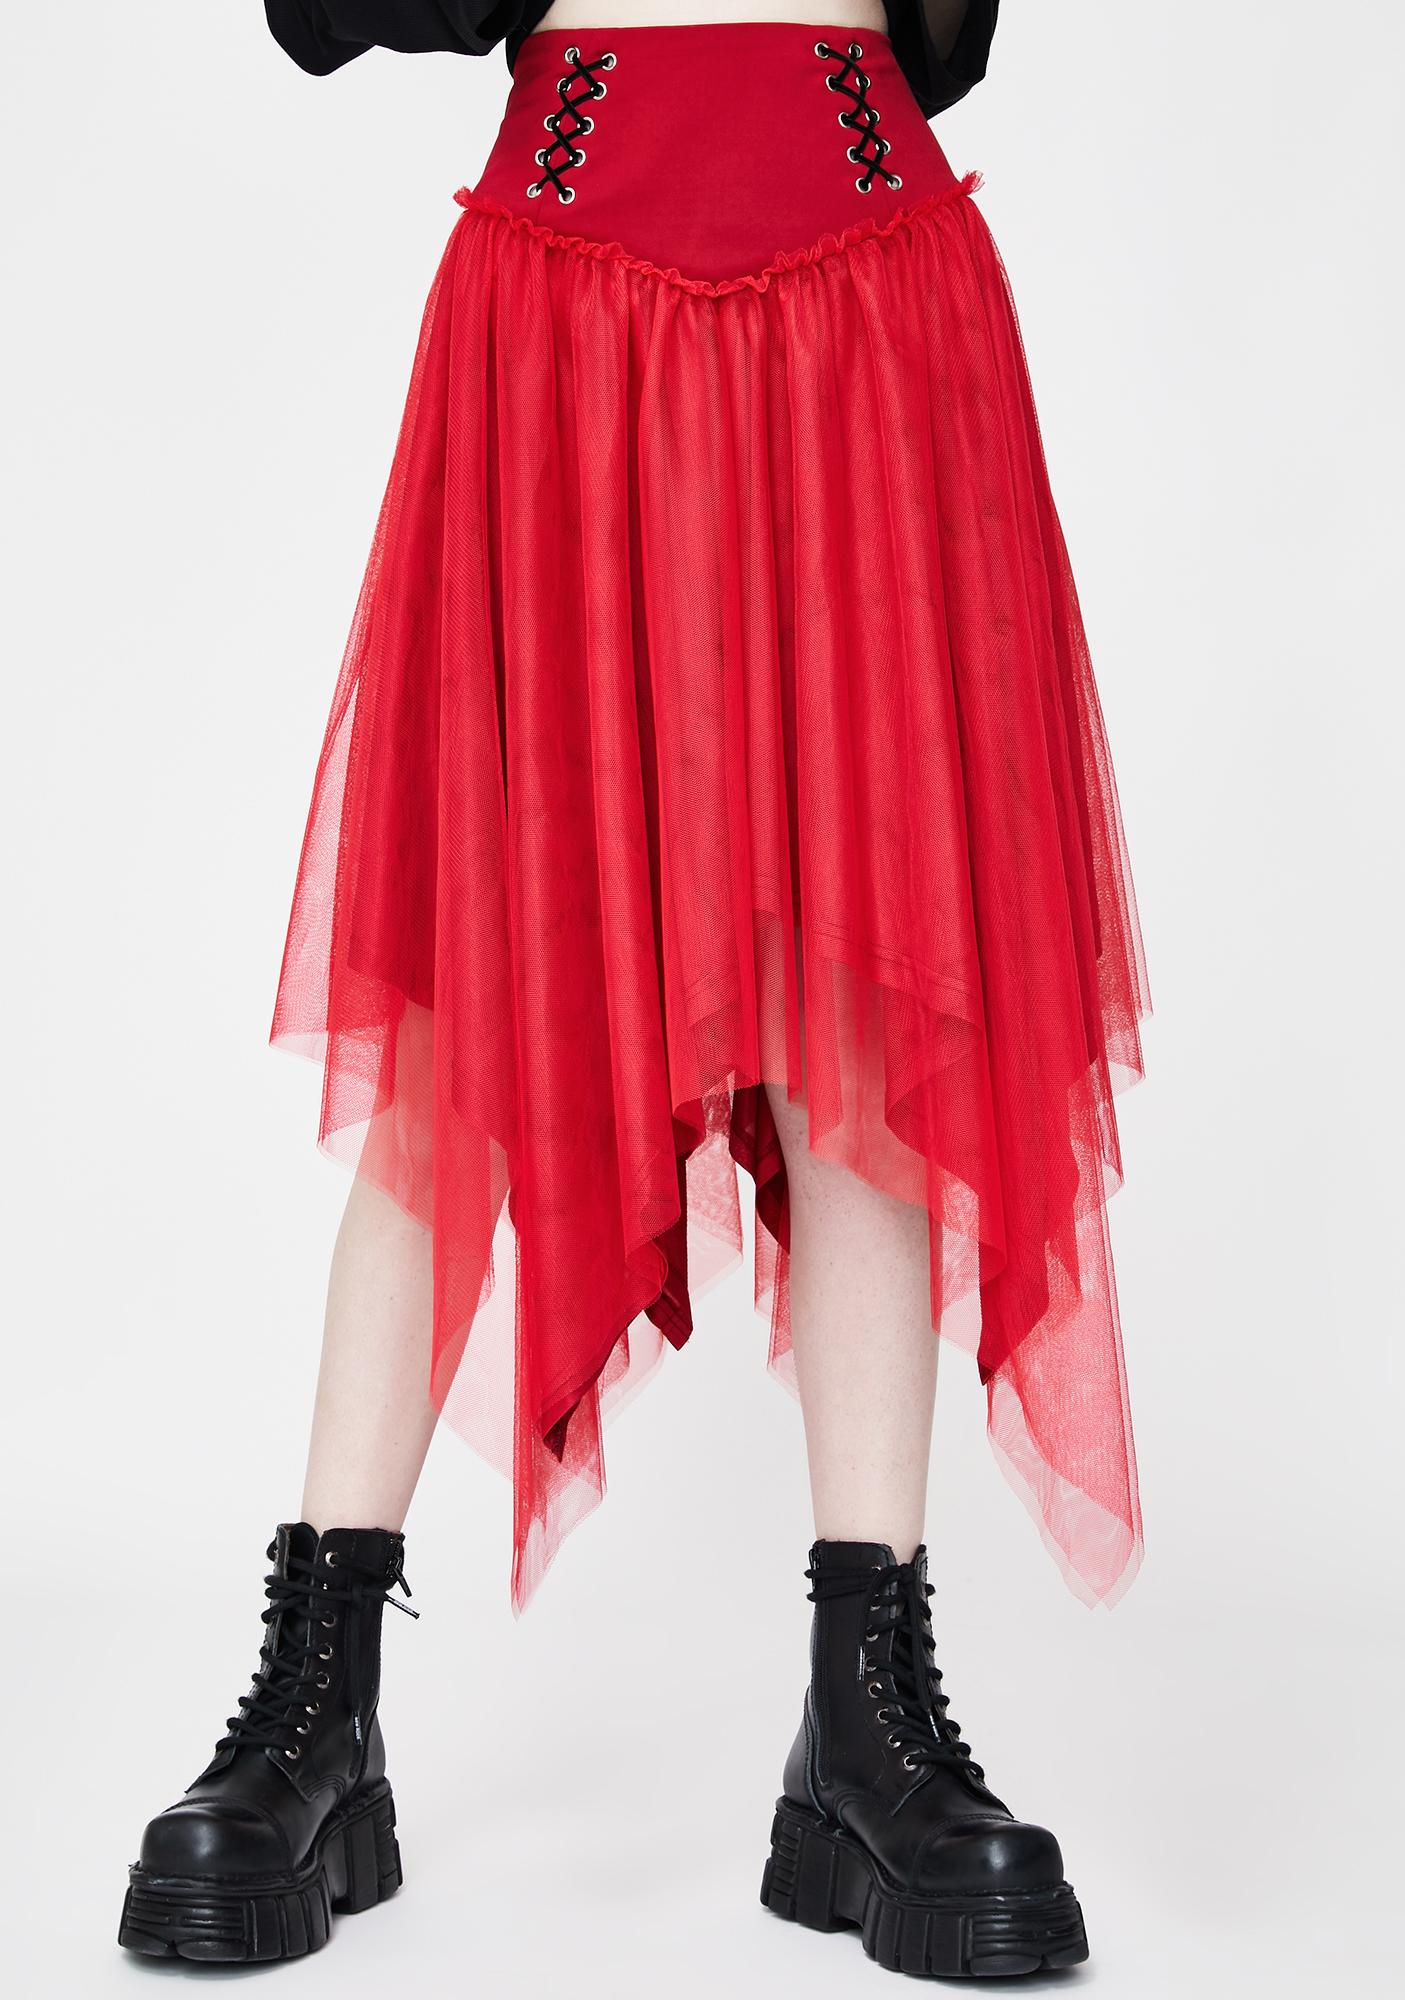 Punk Rave Red Lace Up Tulle Midi Skirt